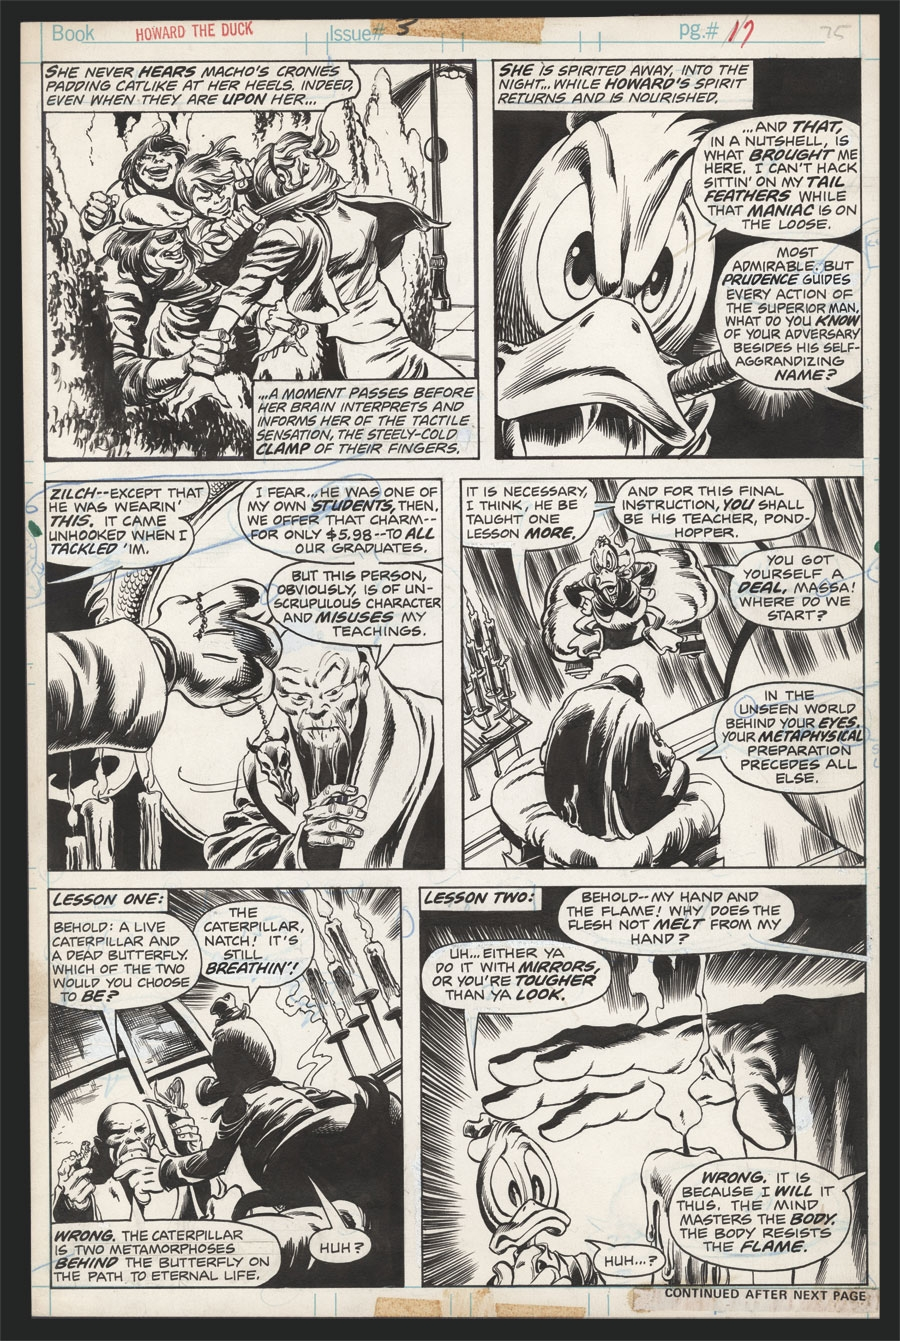 Howard The Duck #3 Pg 17 by John Buscema and Steve Leialoha, in